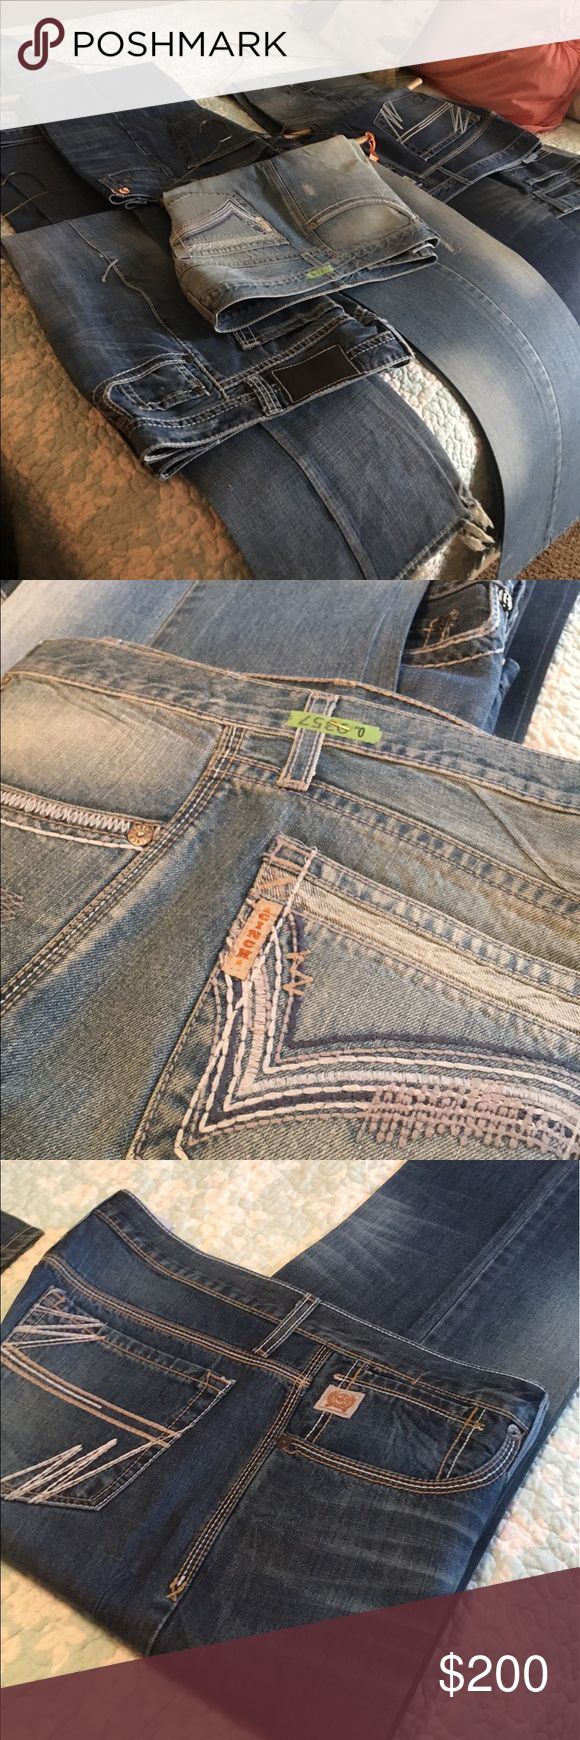 Lot of men's Cinch, Lucky, Rock and Roll Jeans I have 8 pairs or men's extra heavy starched jeans. They are all in good condition, most of them in excellent condition. I would like to sell them all at once in a lot instead of piecing them out. All great jeans, just trying to down size. Open to offers. Cinch Jeans Bootcut